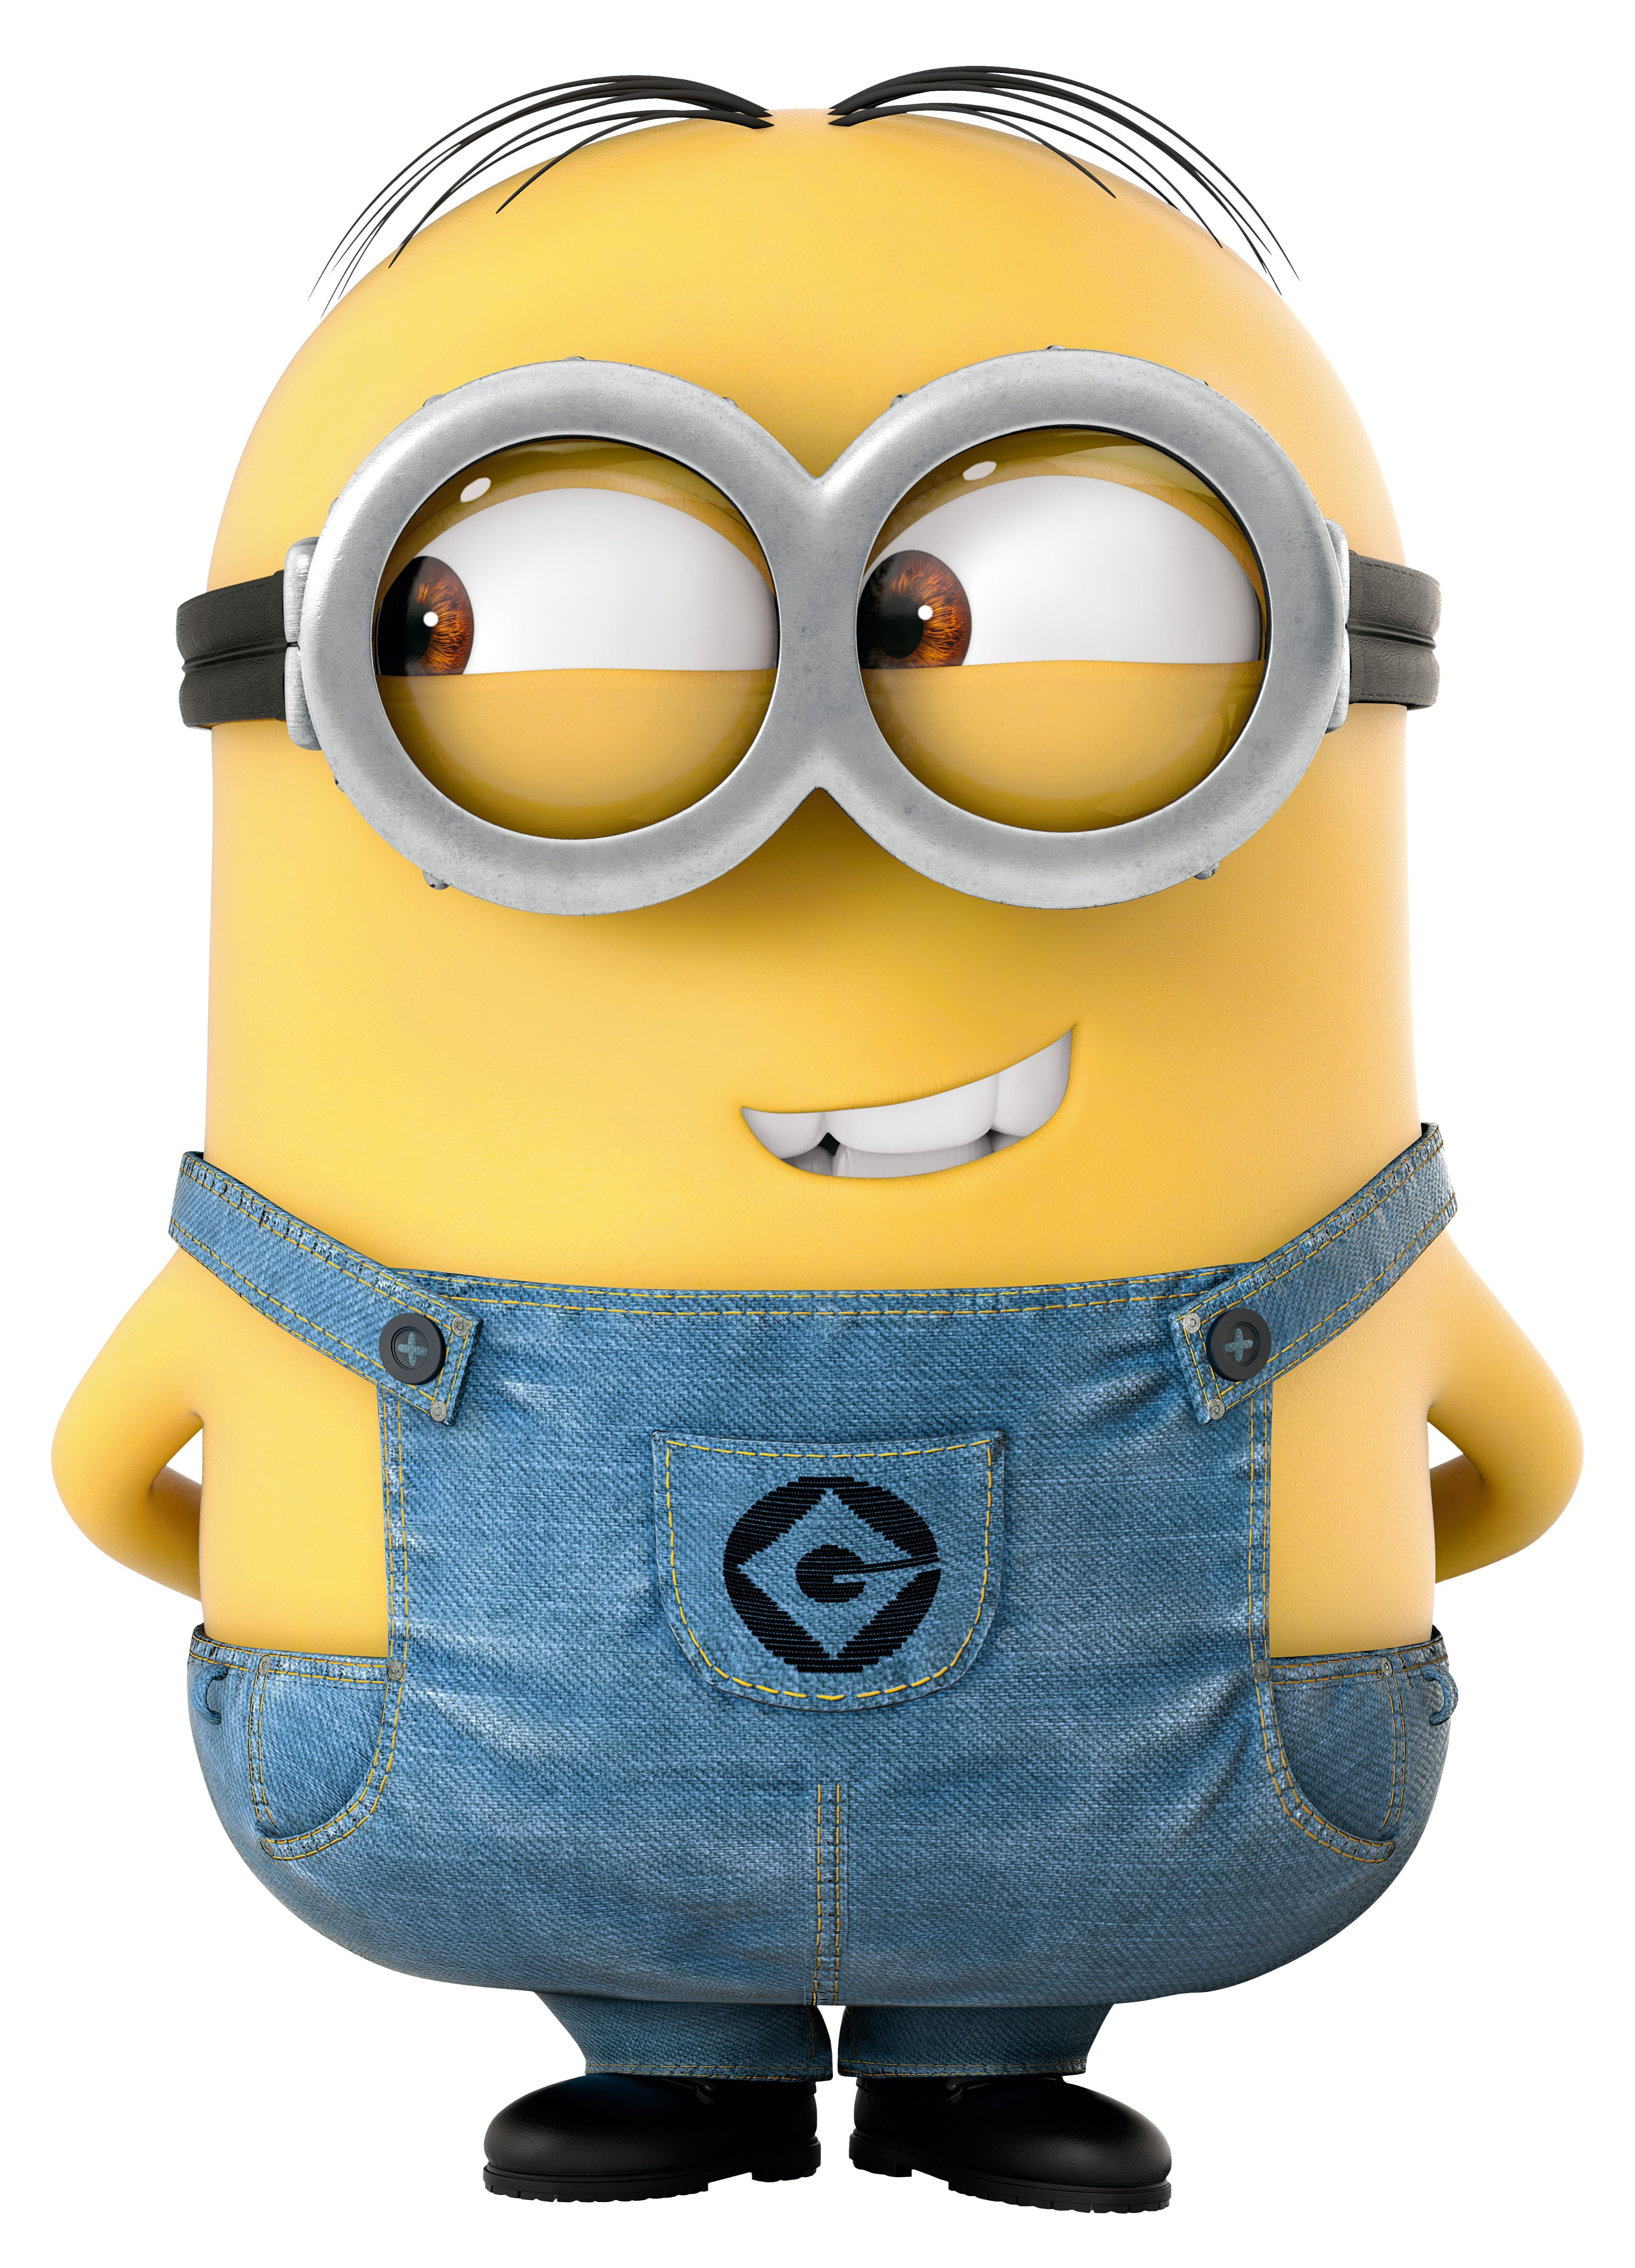 Funny Teachers Cartoon Image Collections By Style Merchant Pro Minions Minions Wallpaper Cute Minions